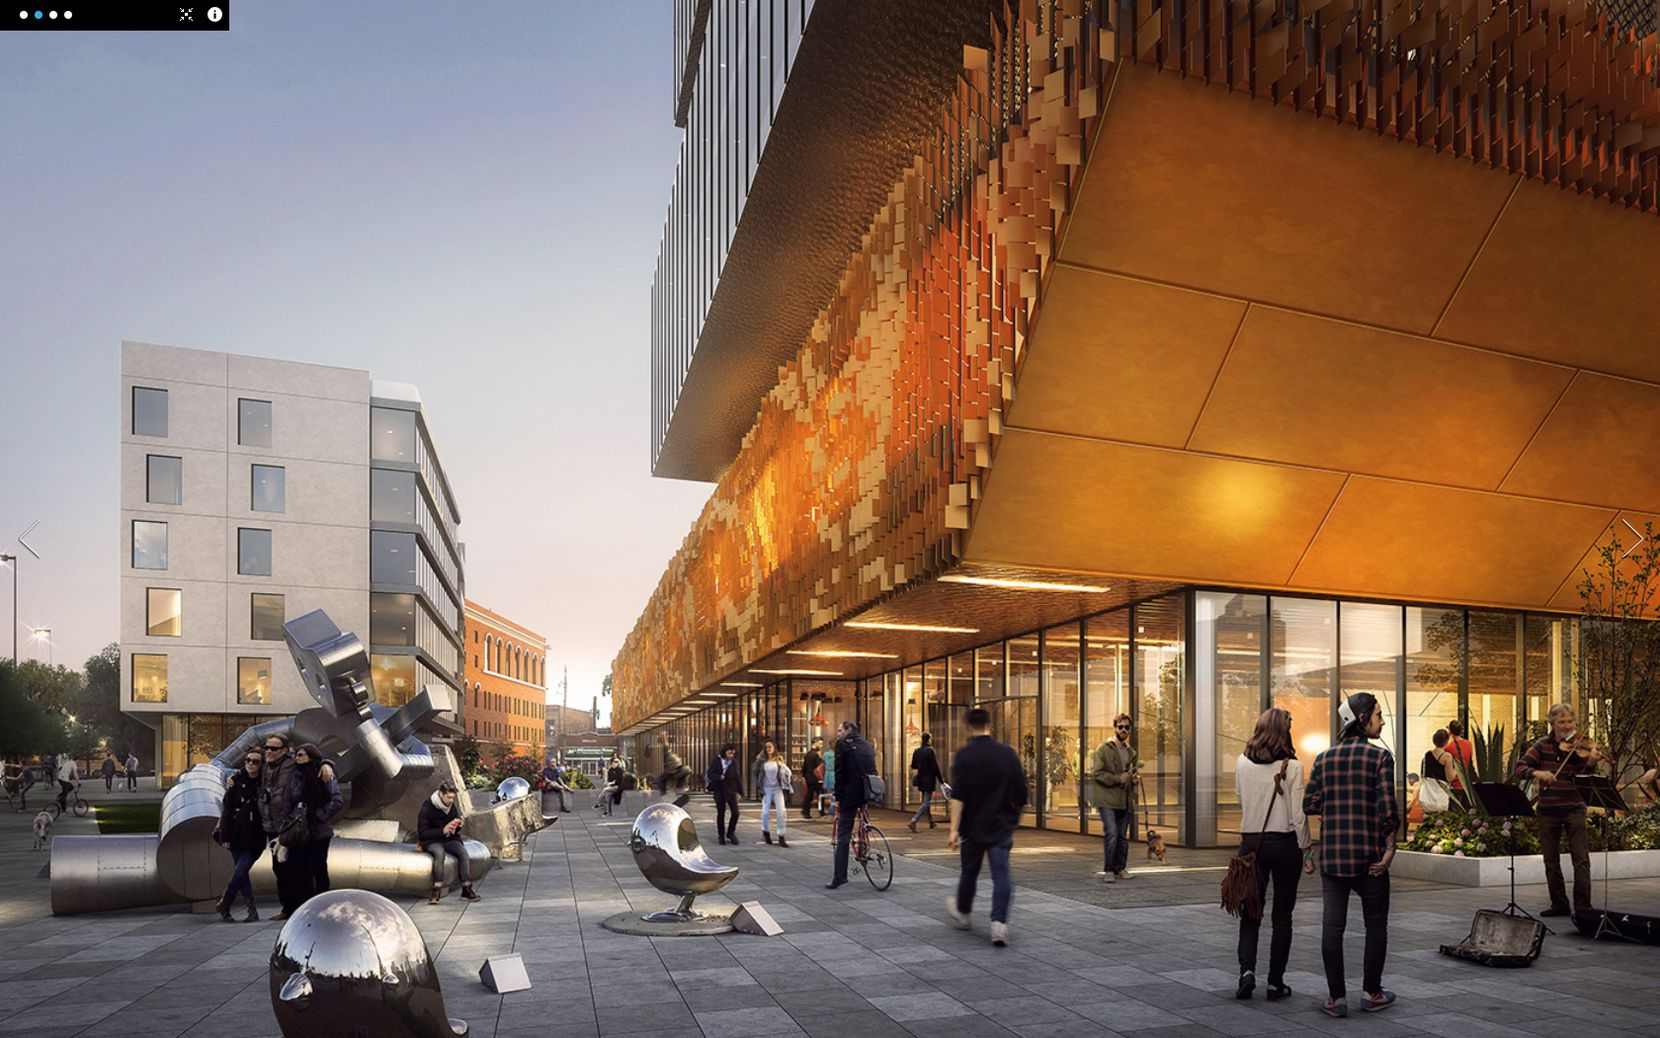 The Epic project in Deep Ellum will include an office building, hotel, apartments and retail.